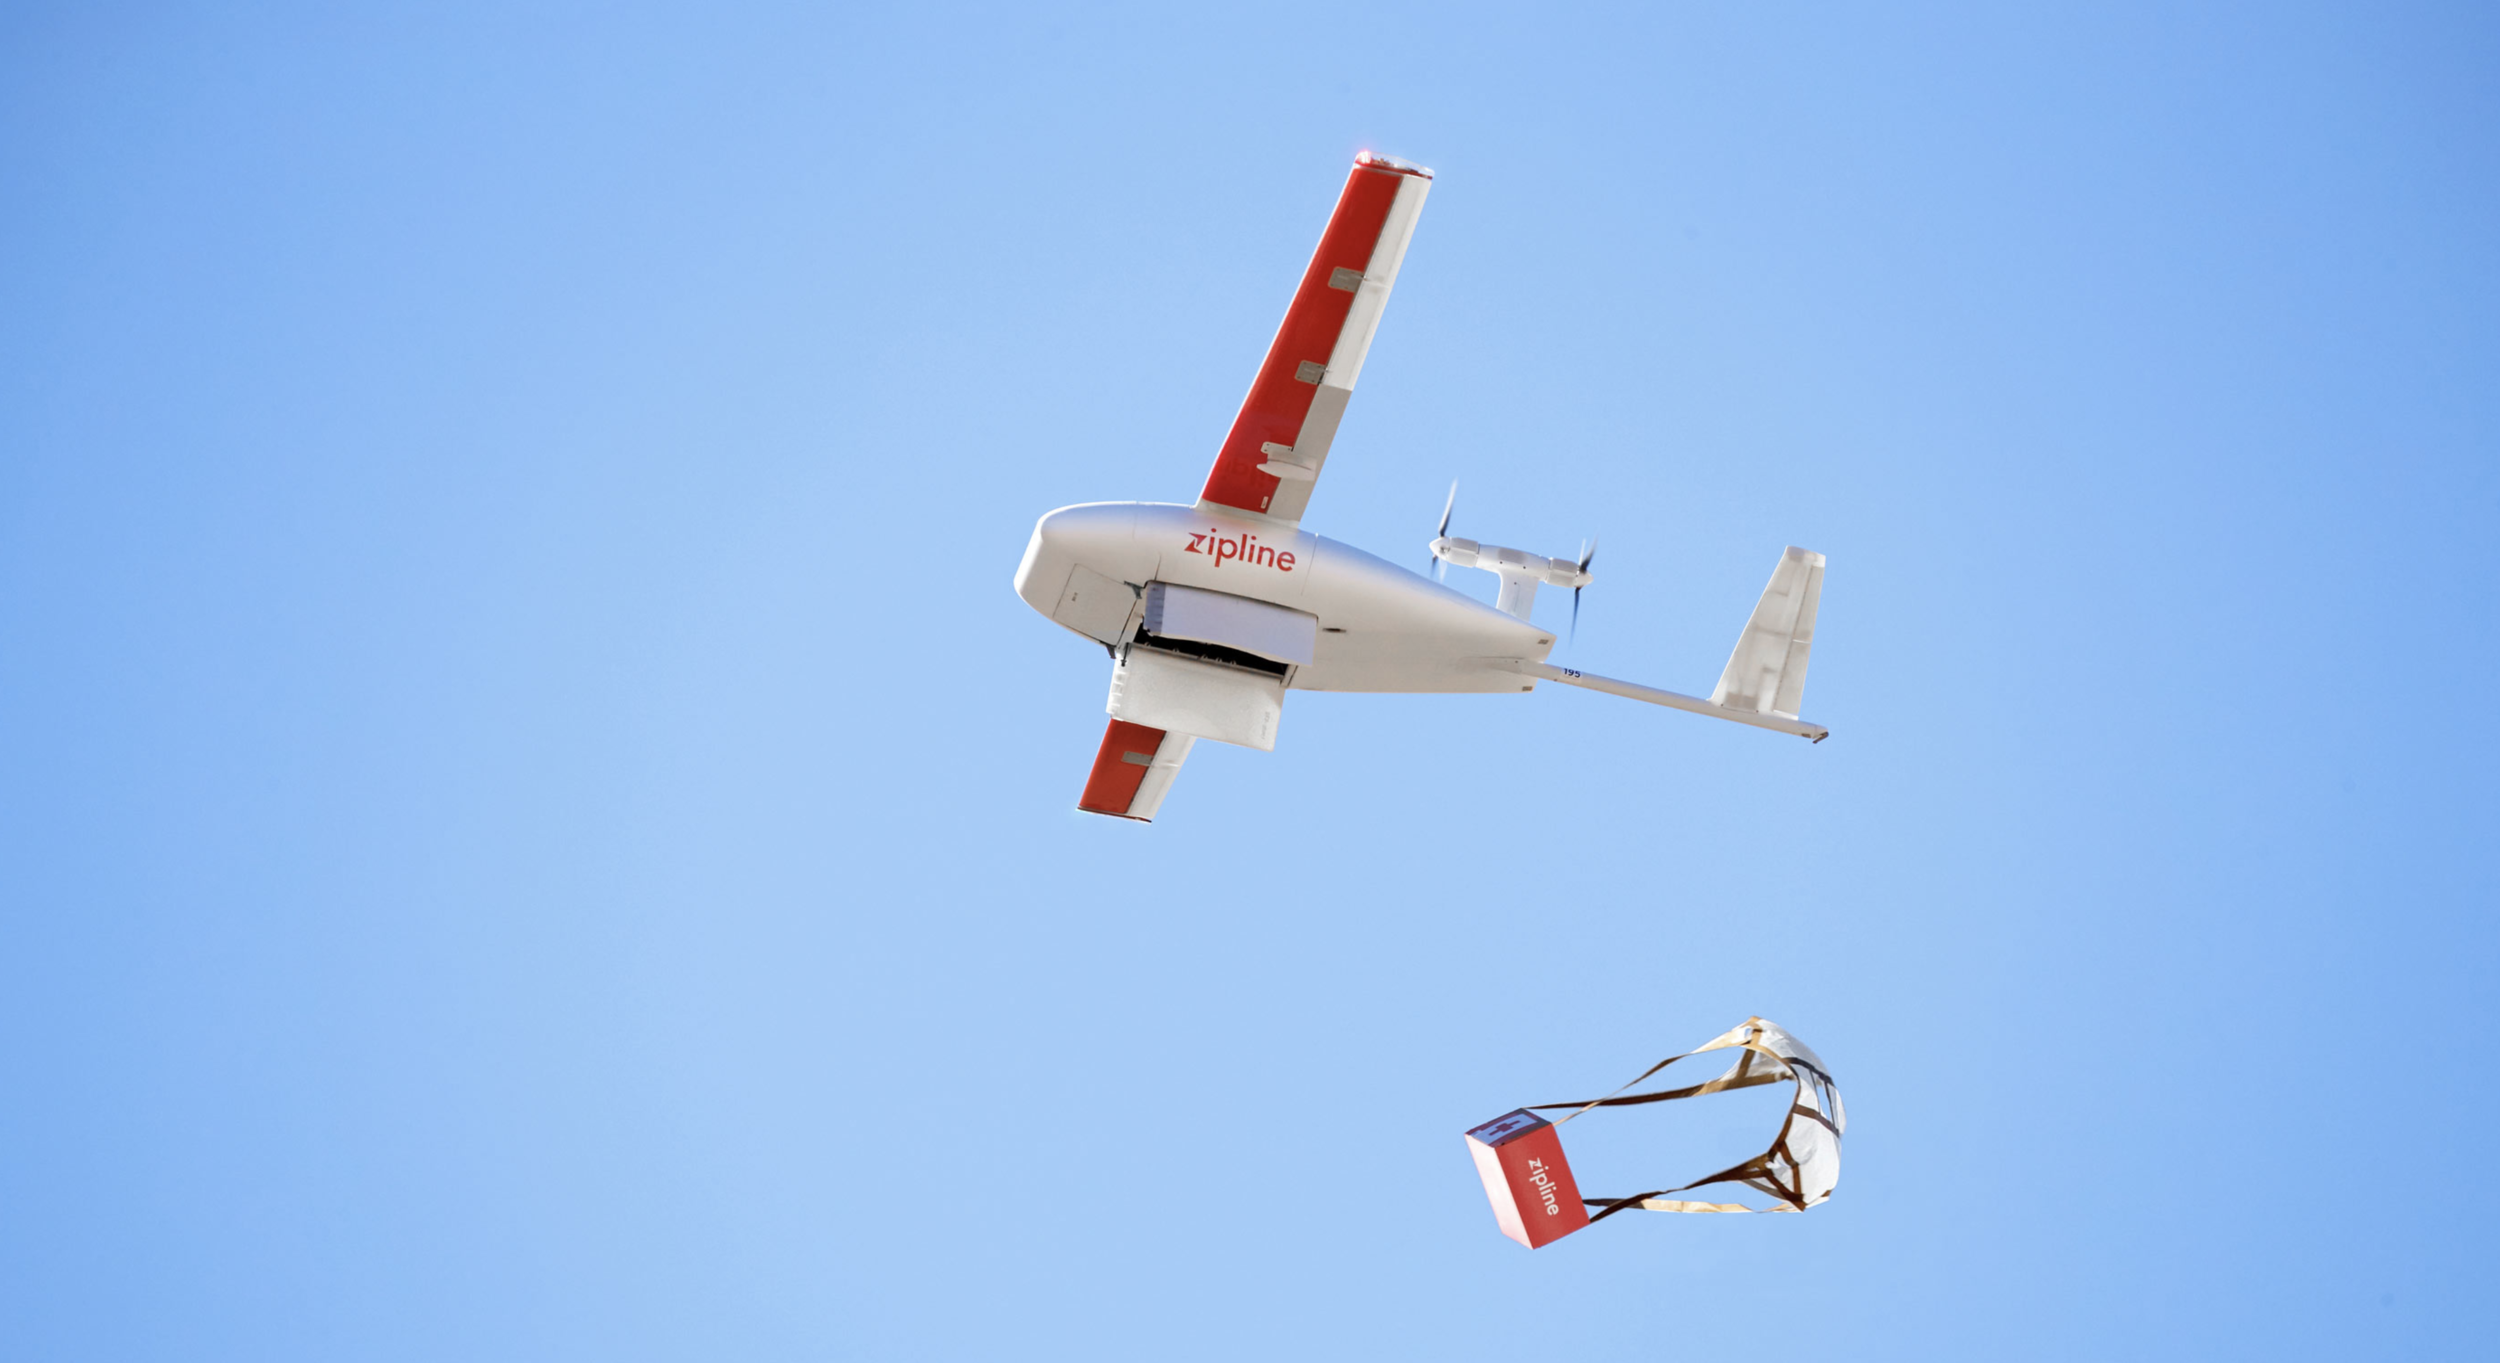 Zipline - Provide access to urgent medicines through a cost-effective drone delivery network.